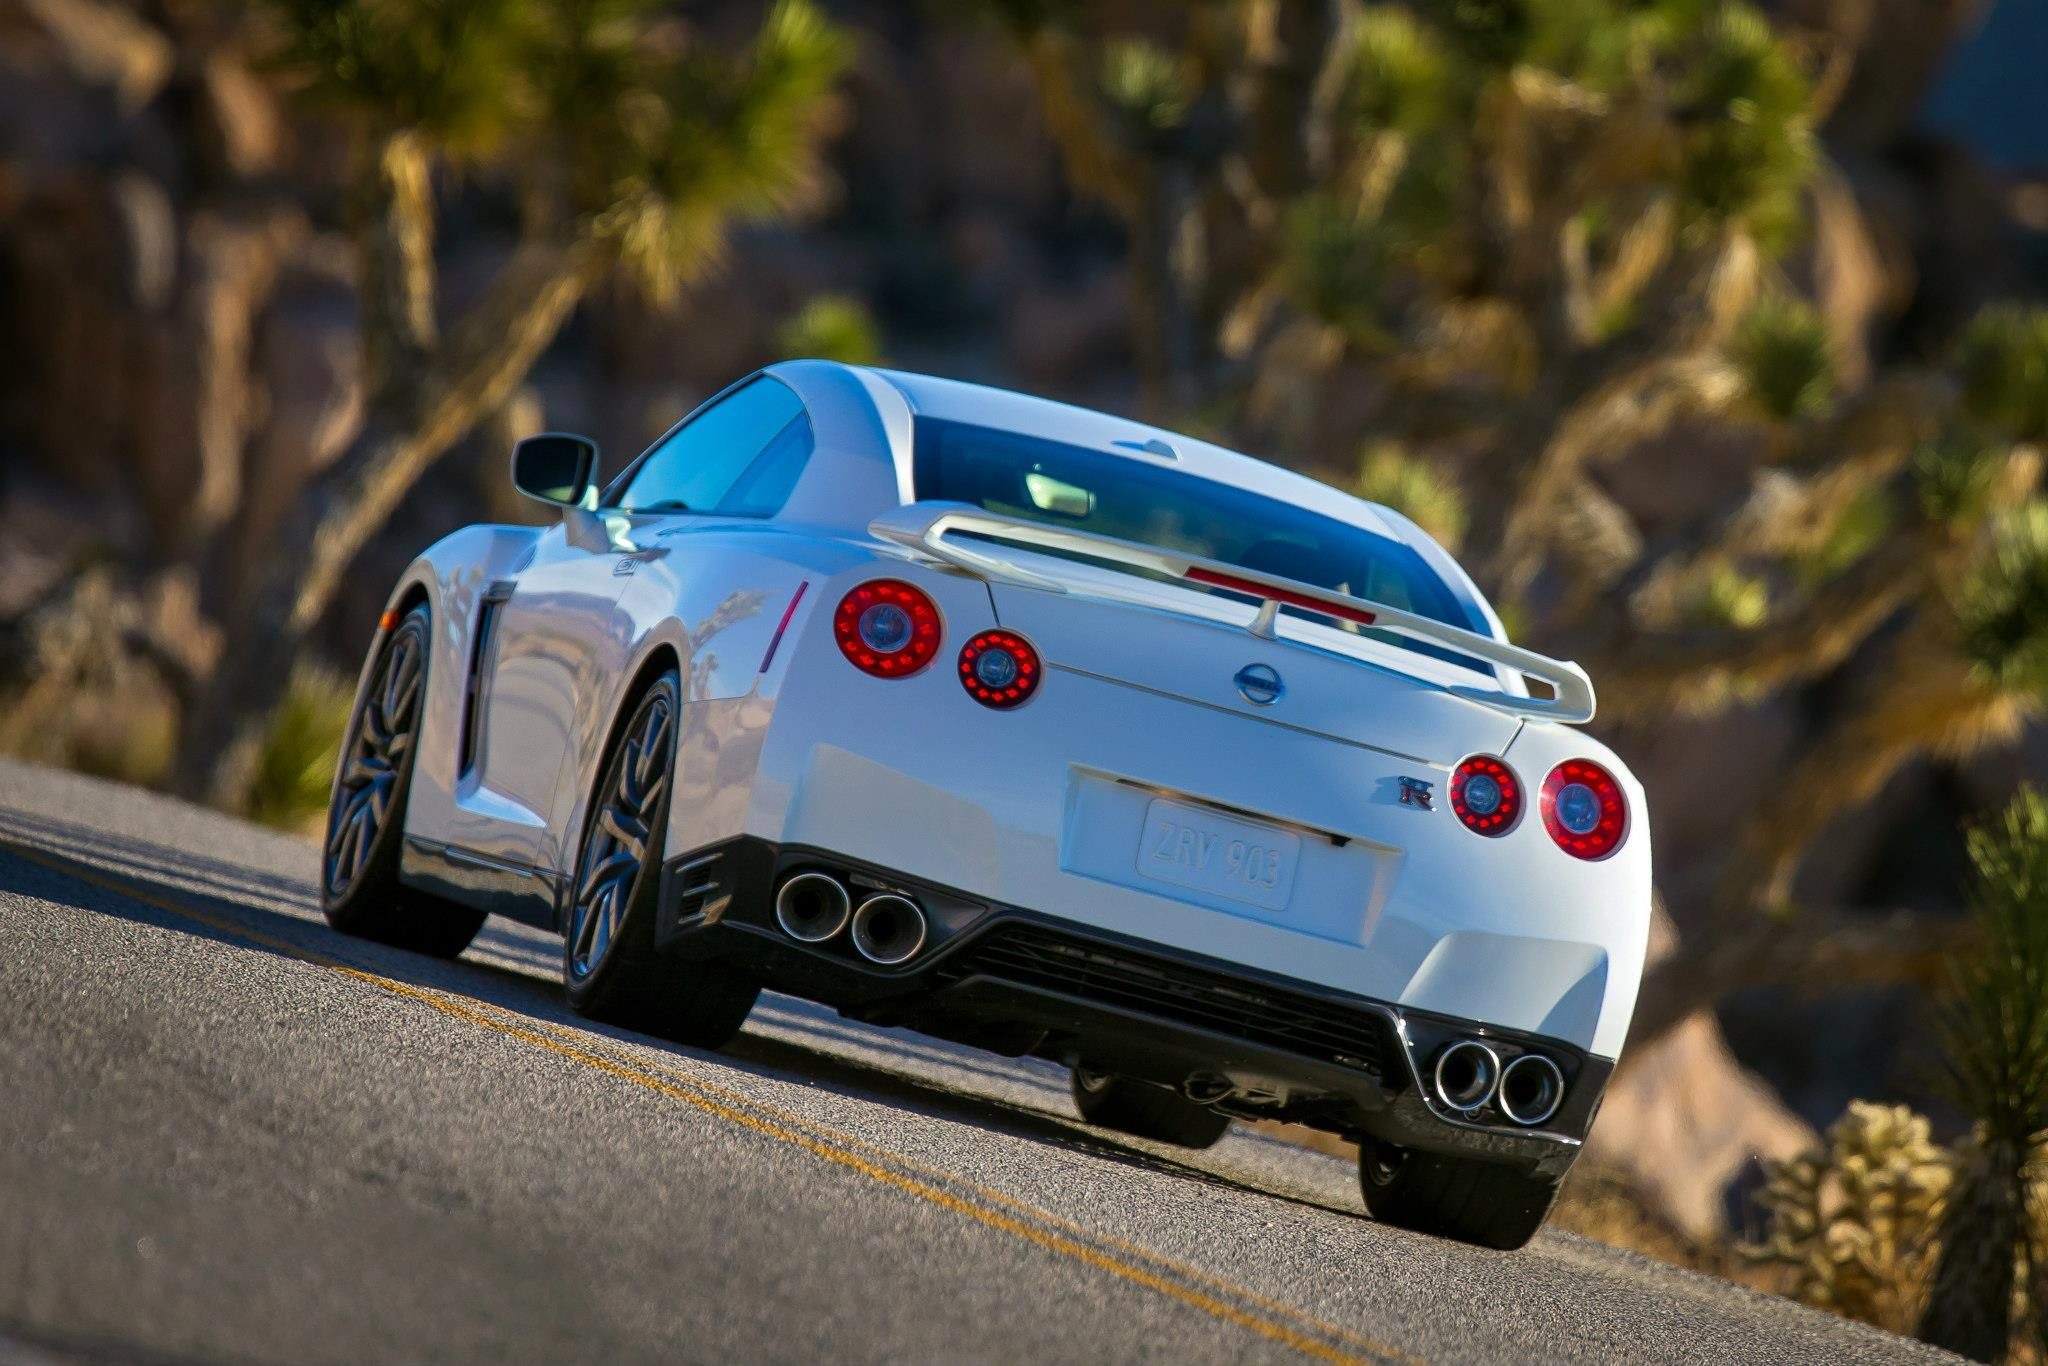 Edmunds Has Detailed Price Information For The Used 2015 Nissan GT R Coupe.  See Our Used 2015 Nissan GT R Coupe Page For Detailed Gas Mileage  Information, ...